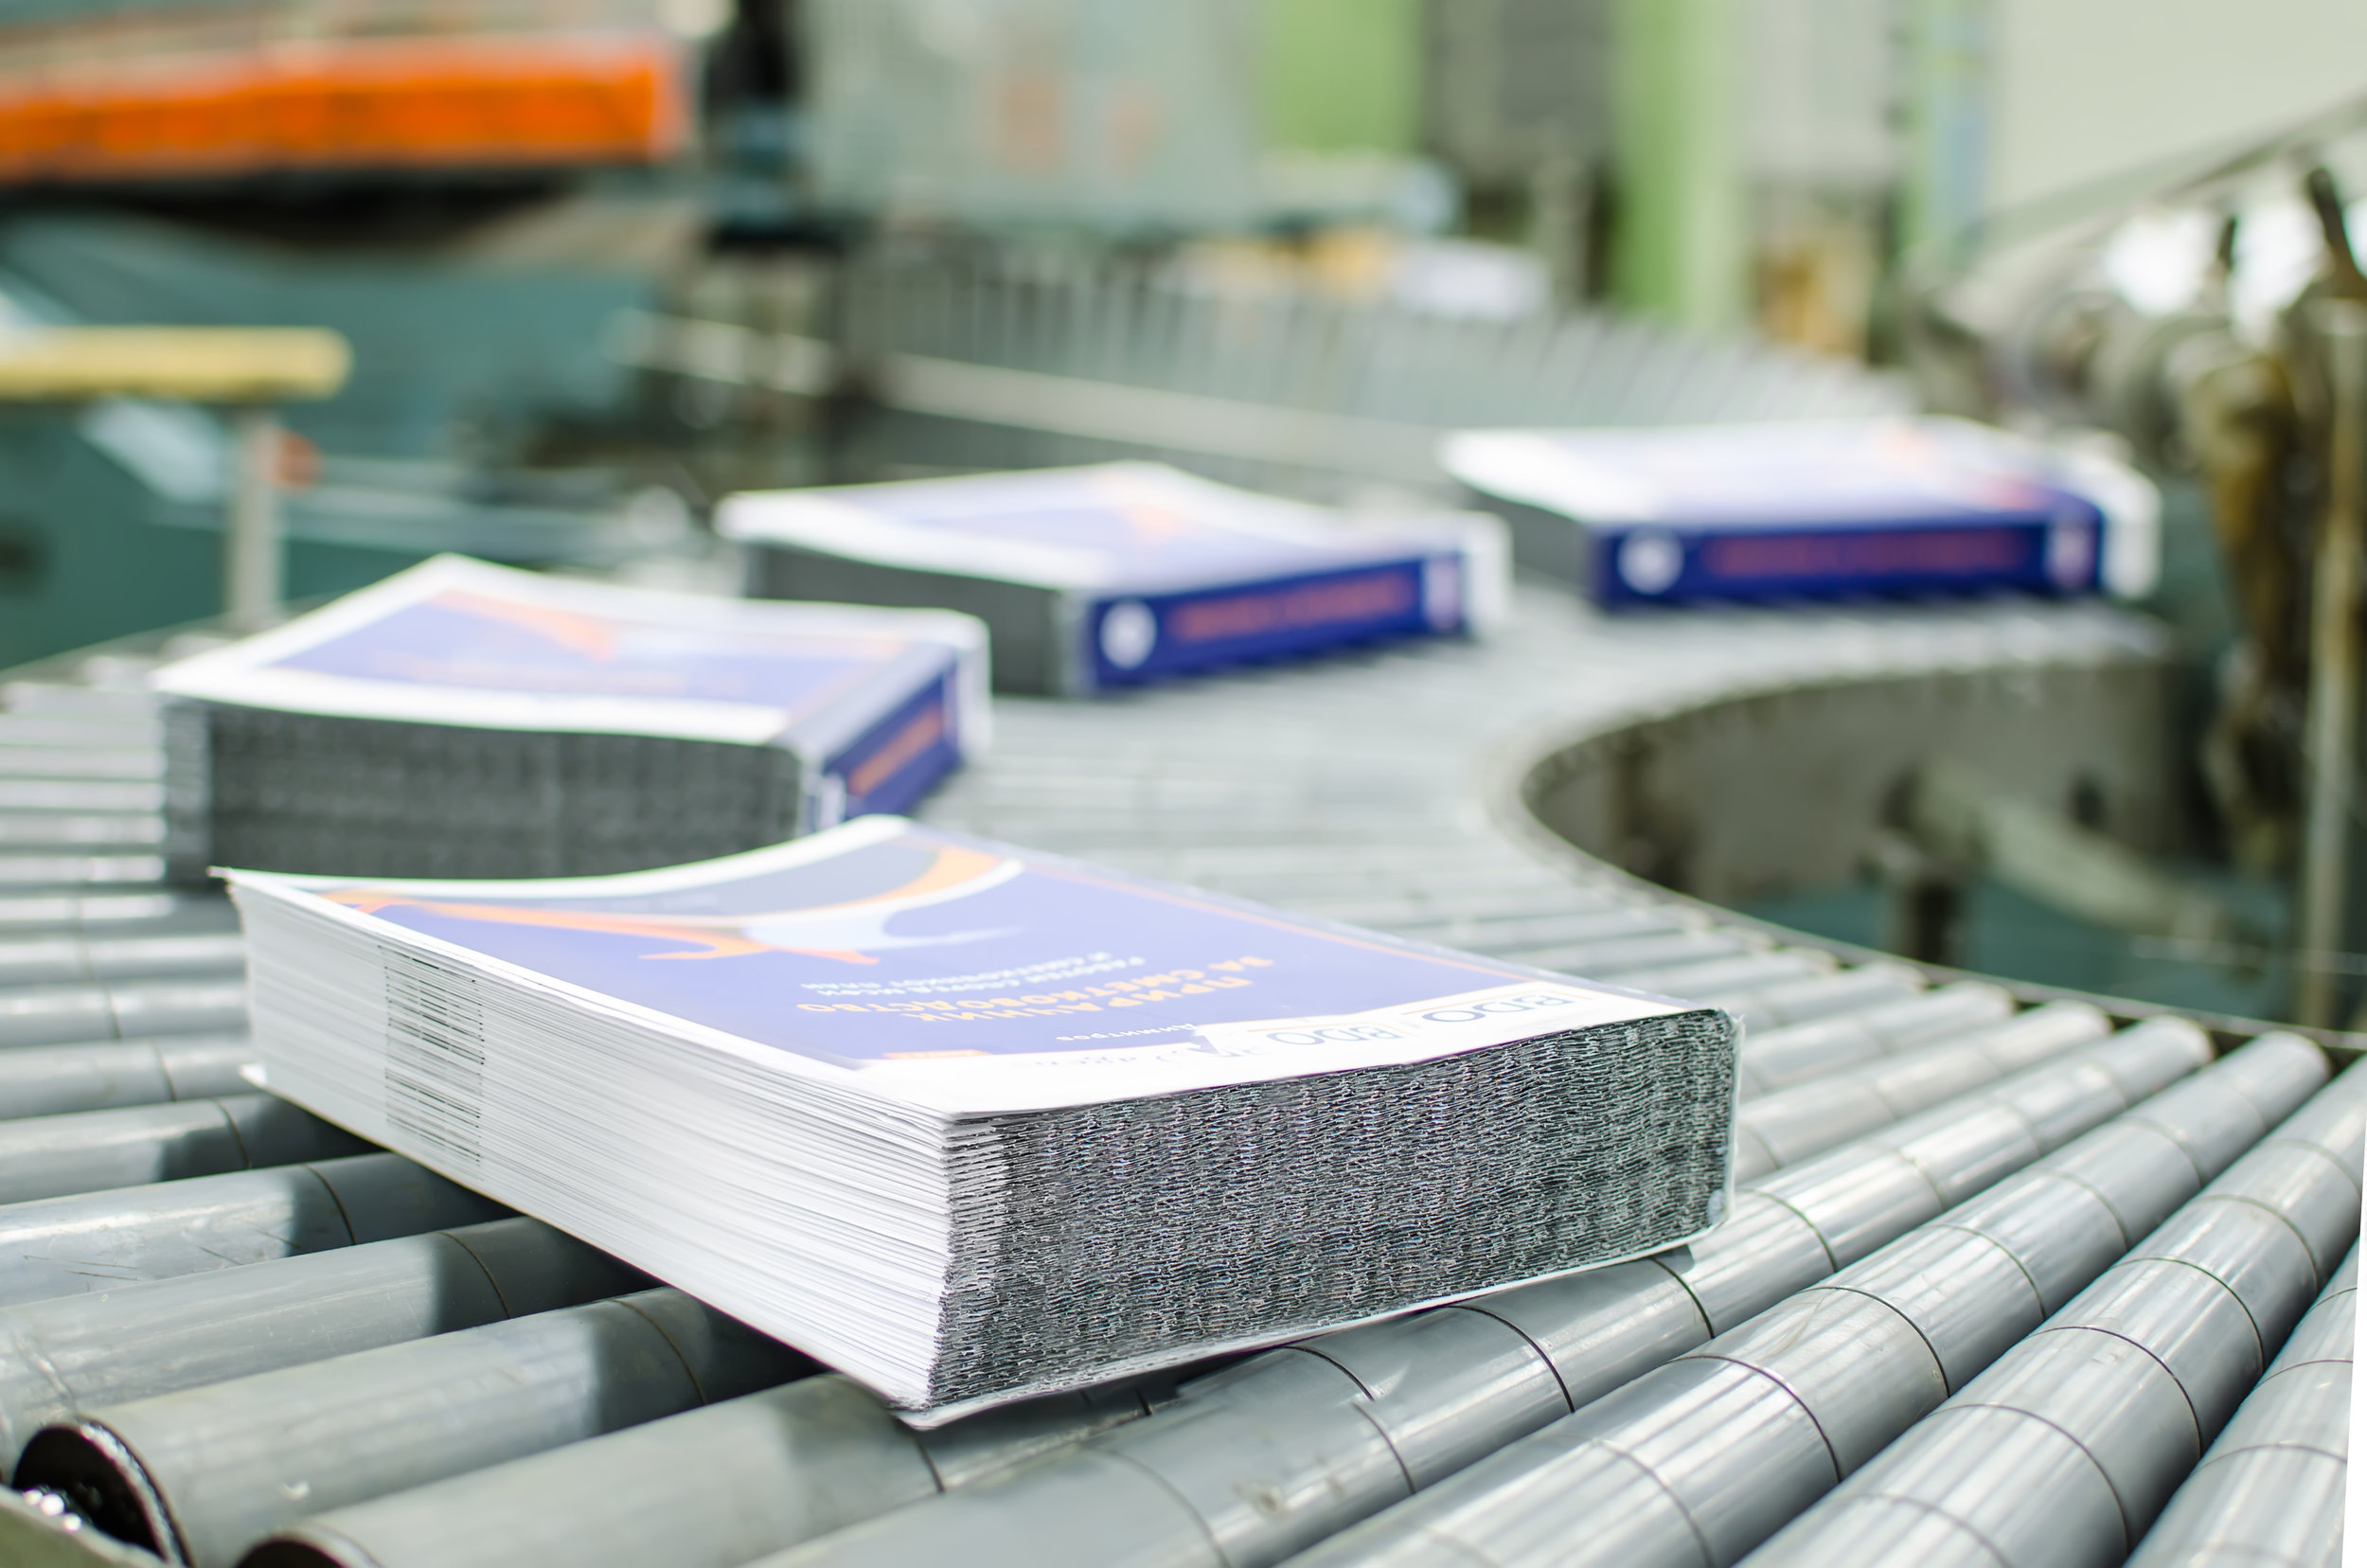 commercial-printing-services.jpg